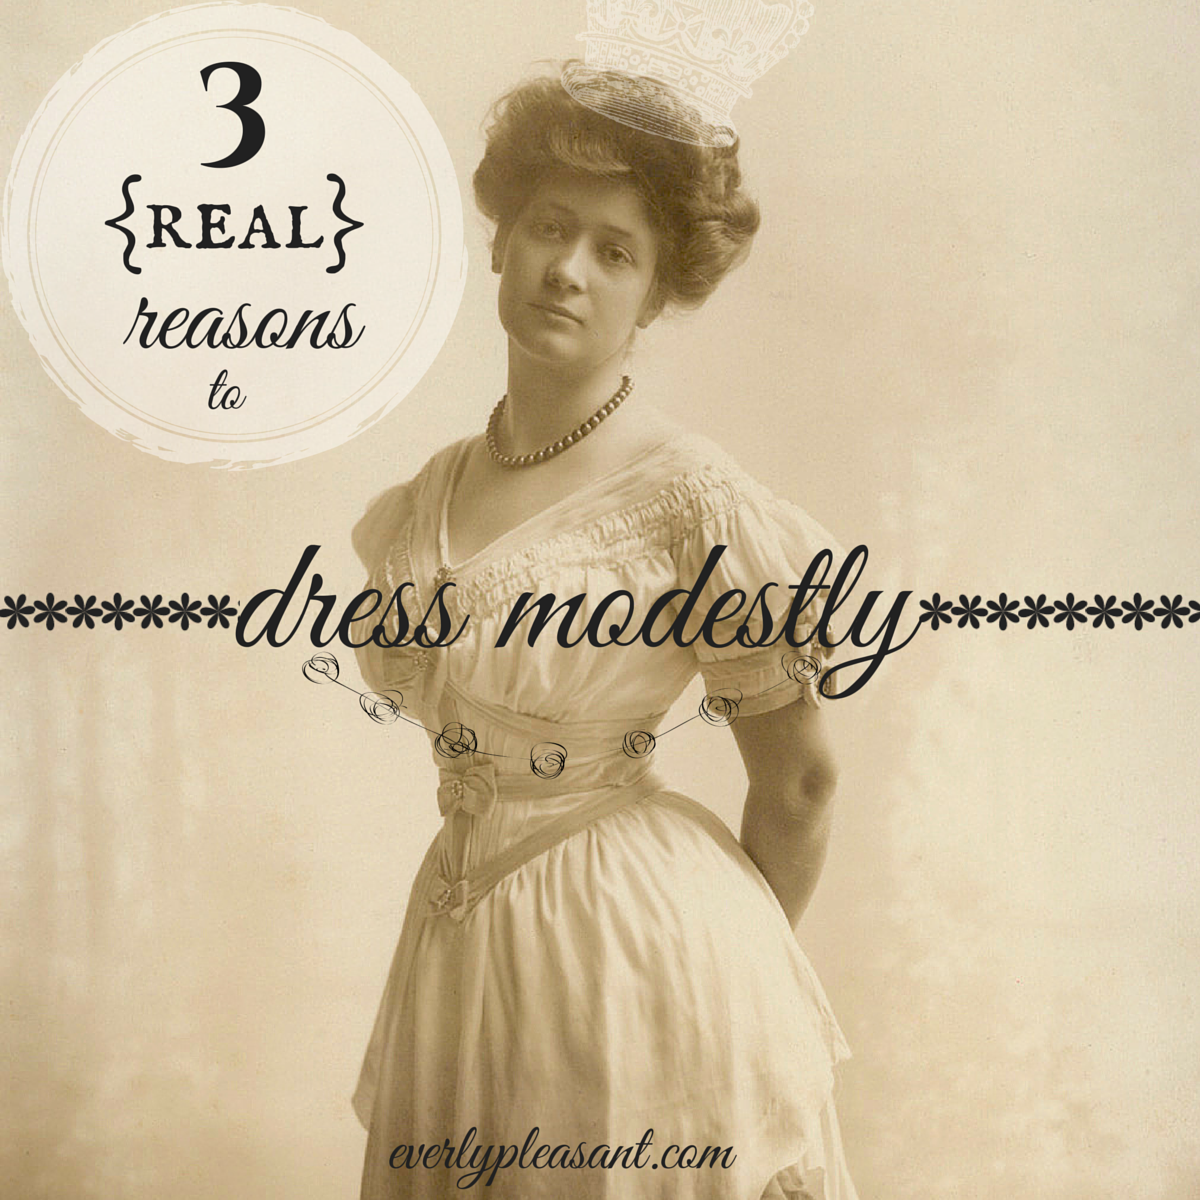 3 real reasons to dress modestly